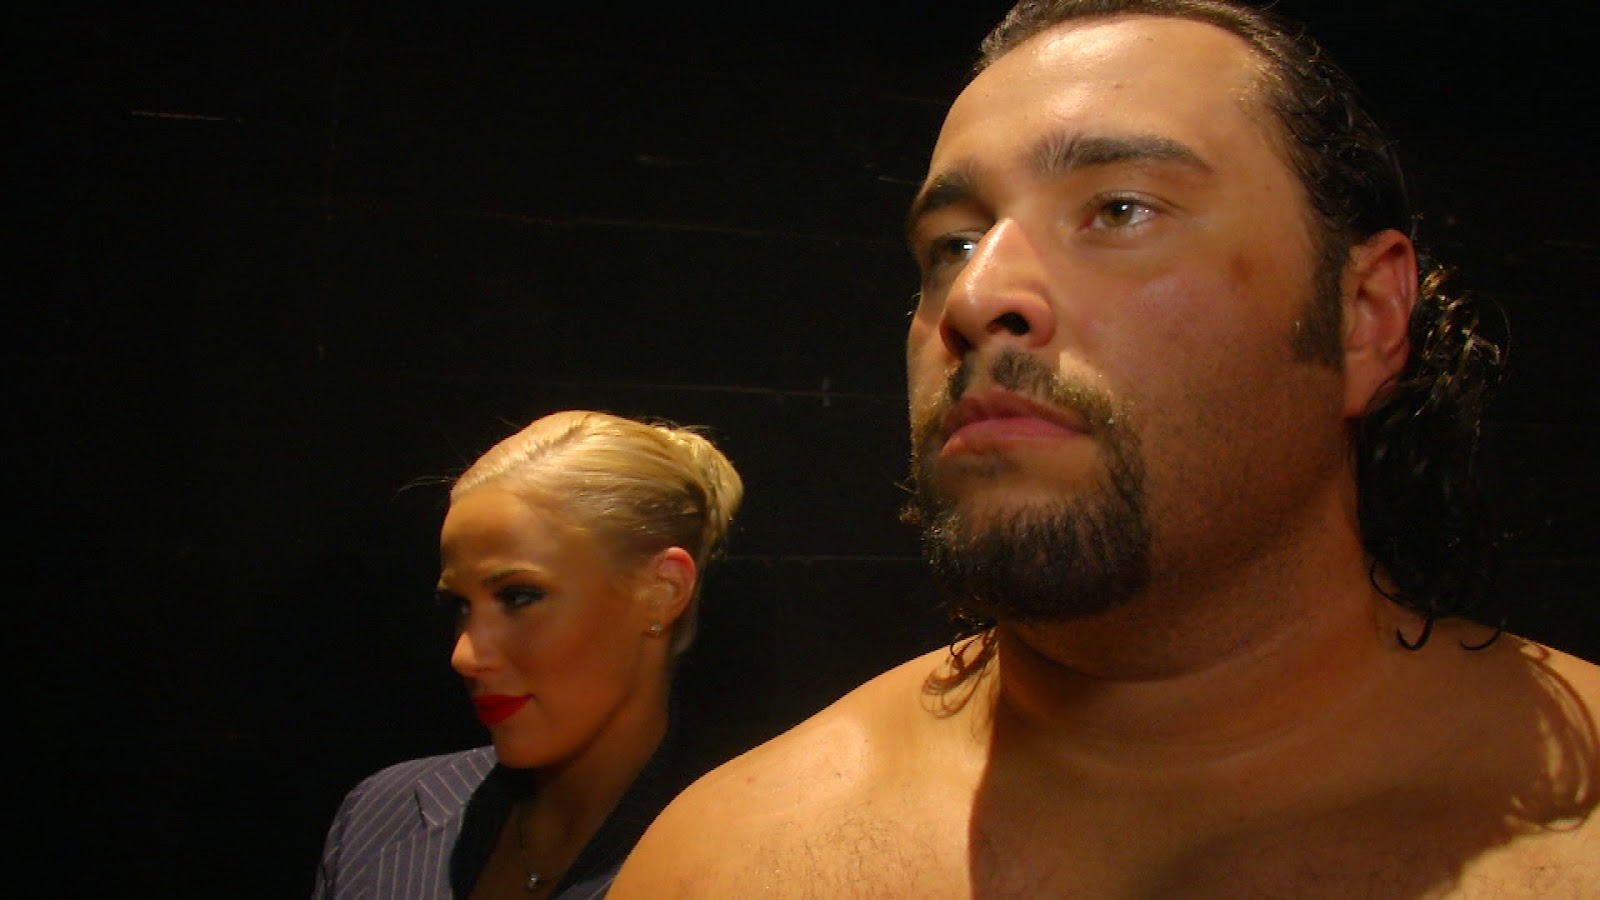 Alexander Rusev with lana